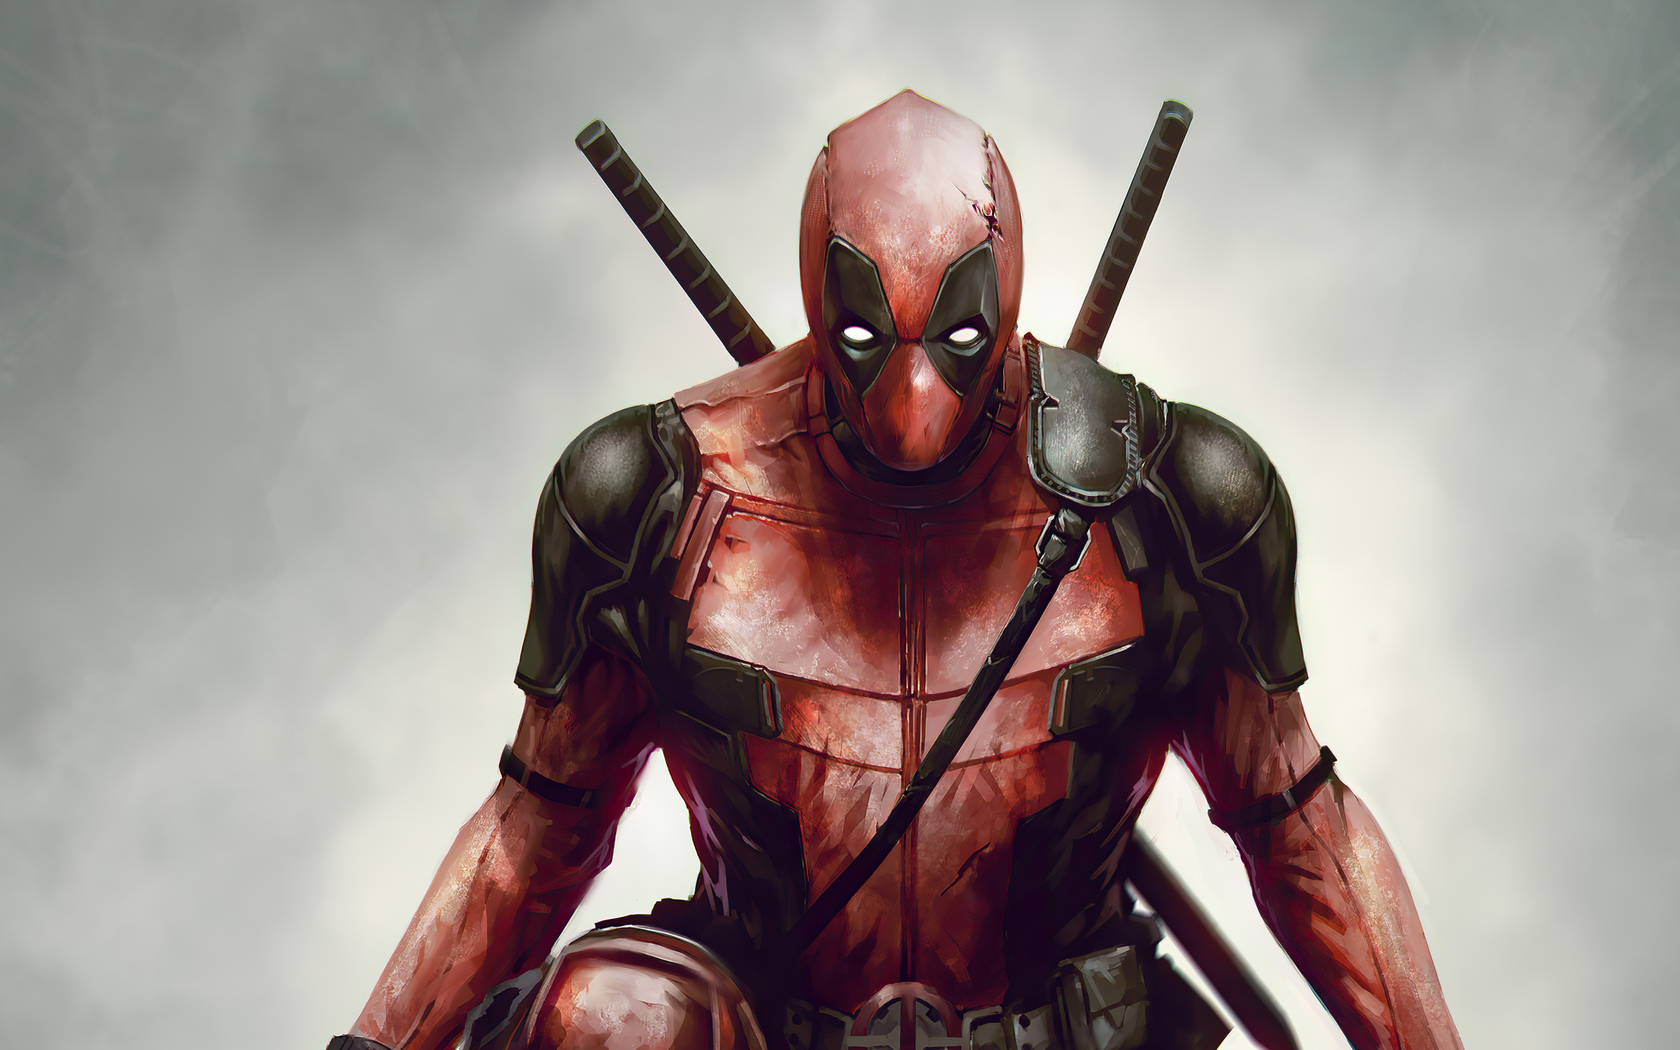 deadpool-with-wolverine-claws-in-hand-v5.jpg